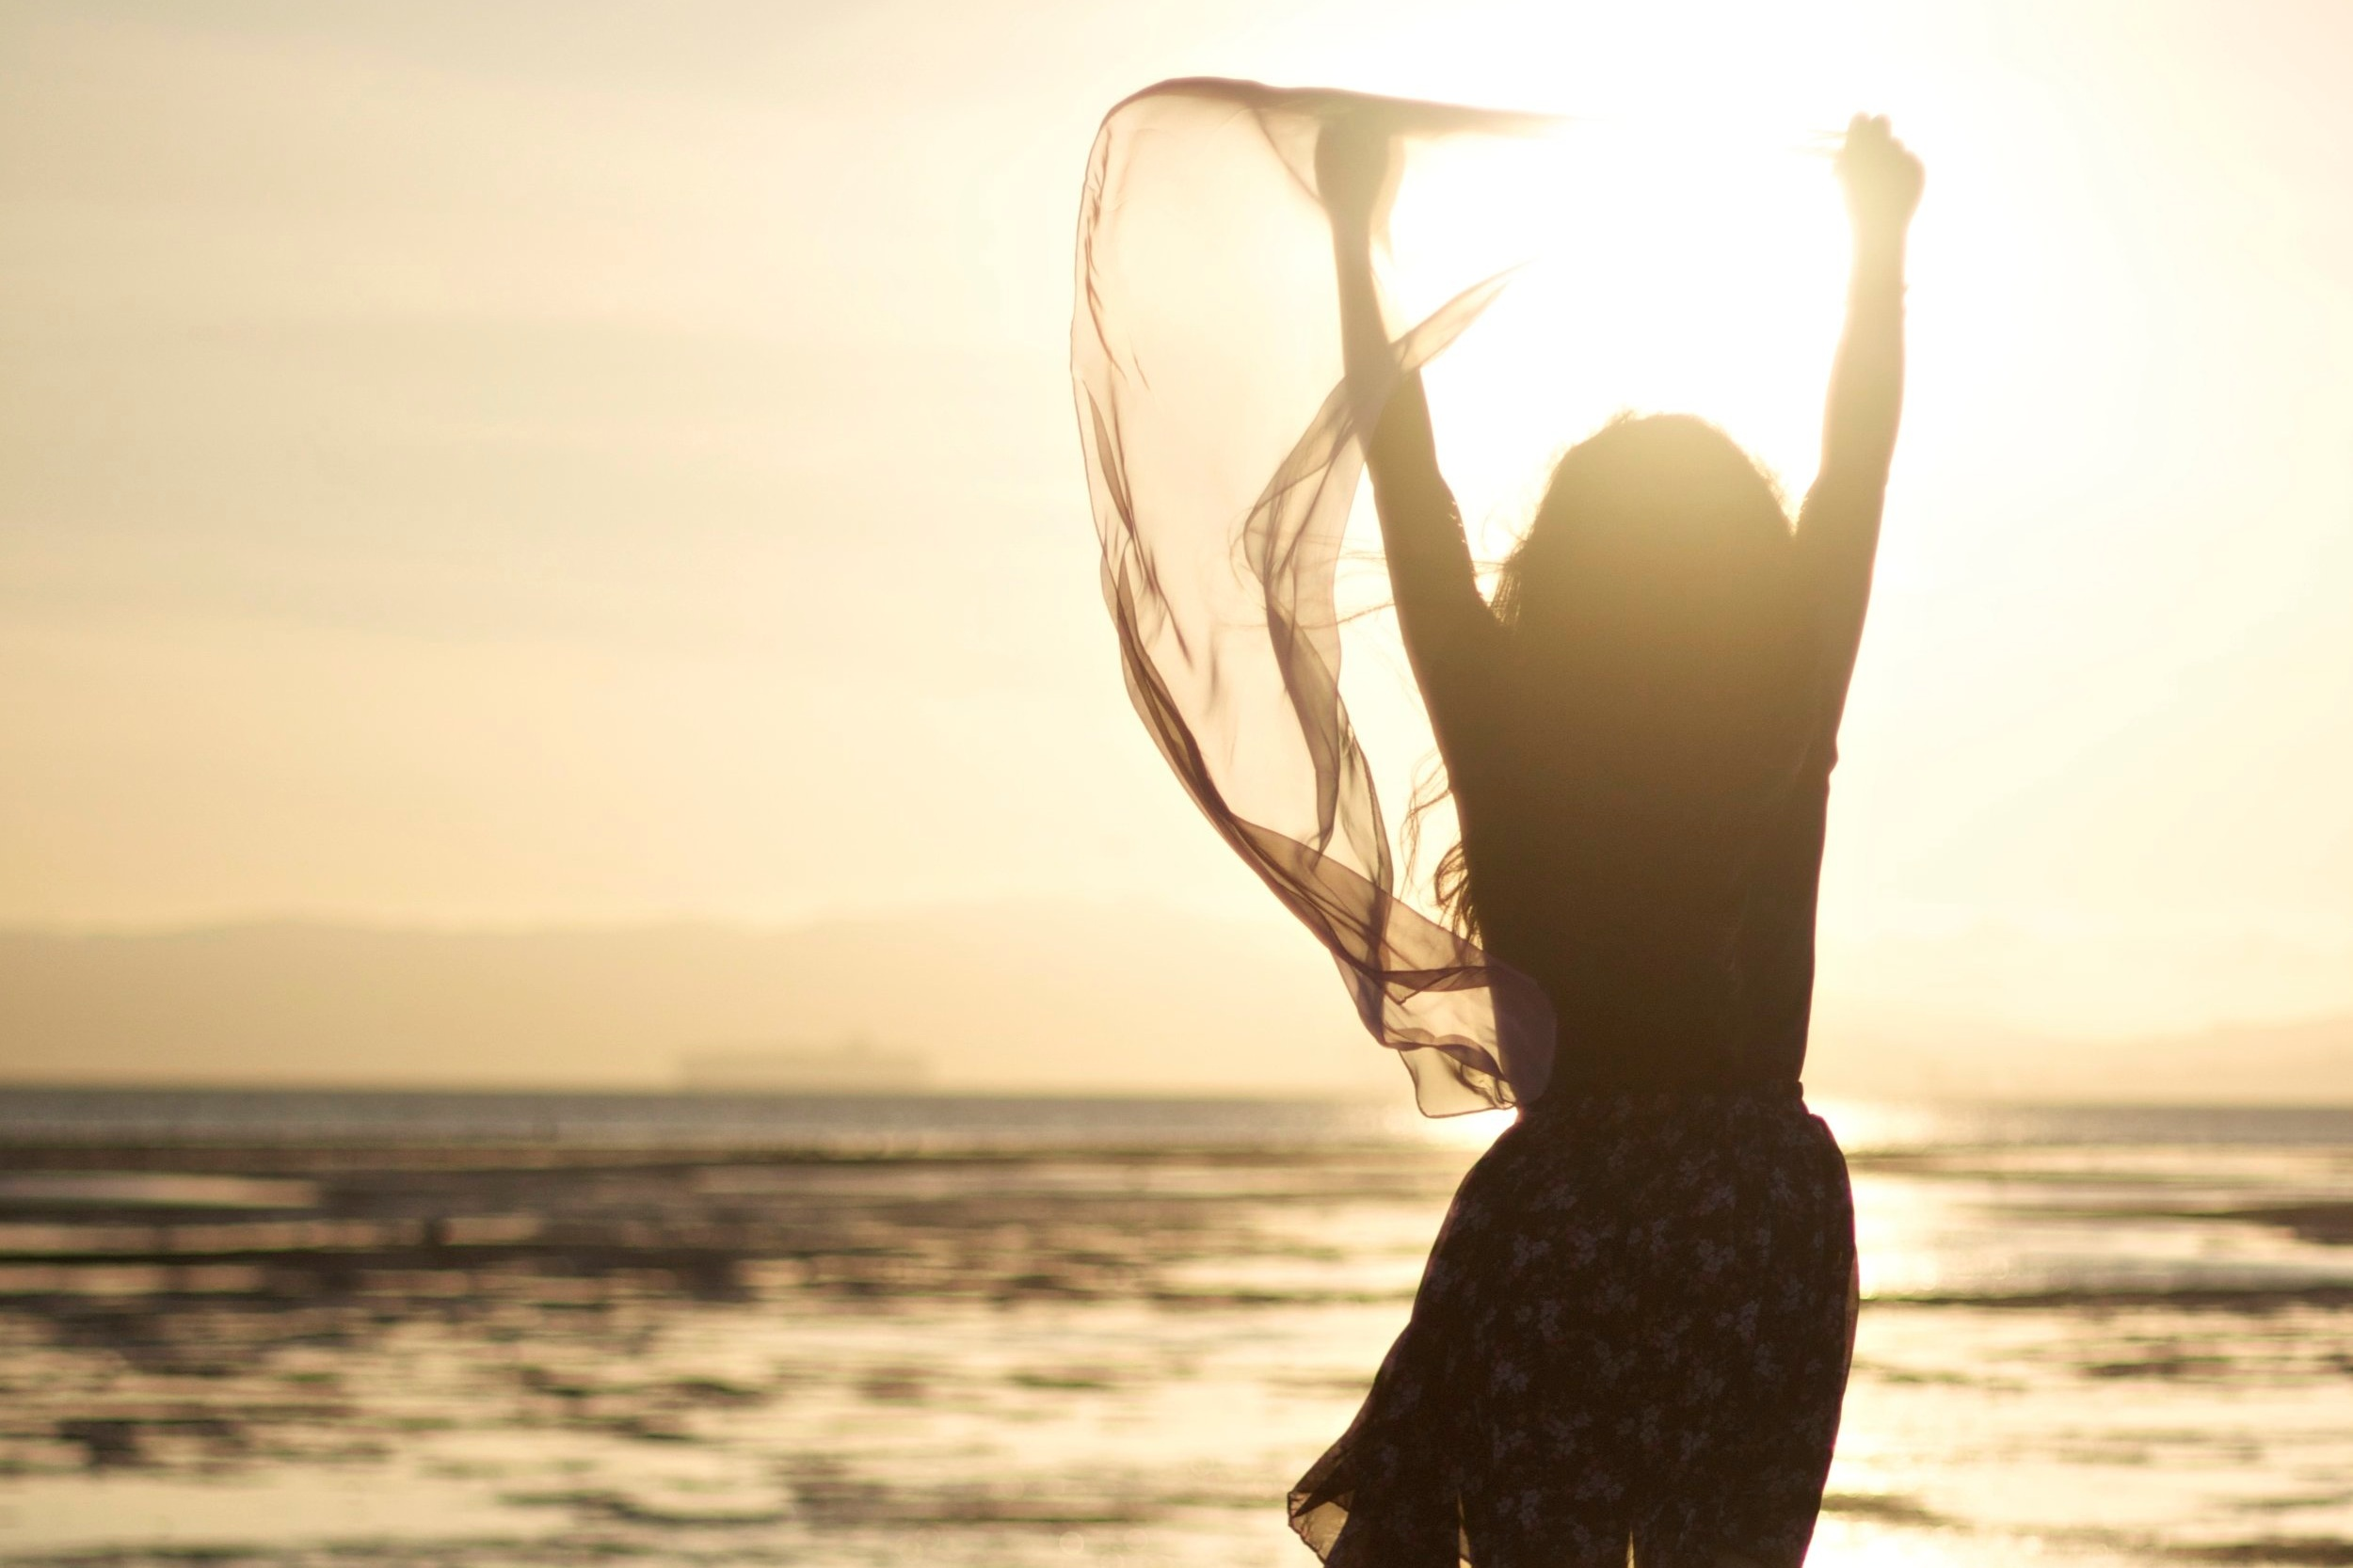 Abortion Recovery - There is hope and healing after an abortion